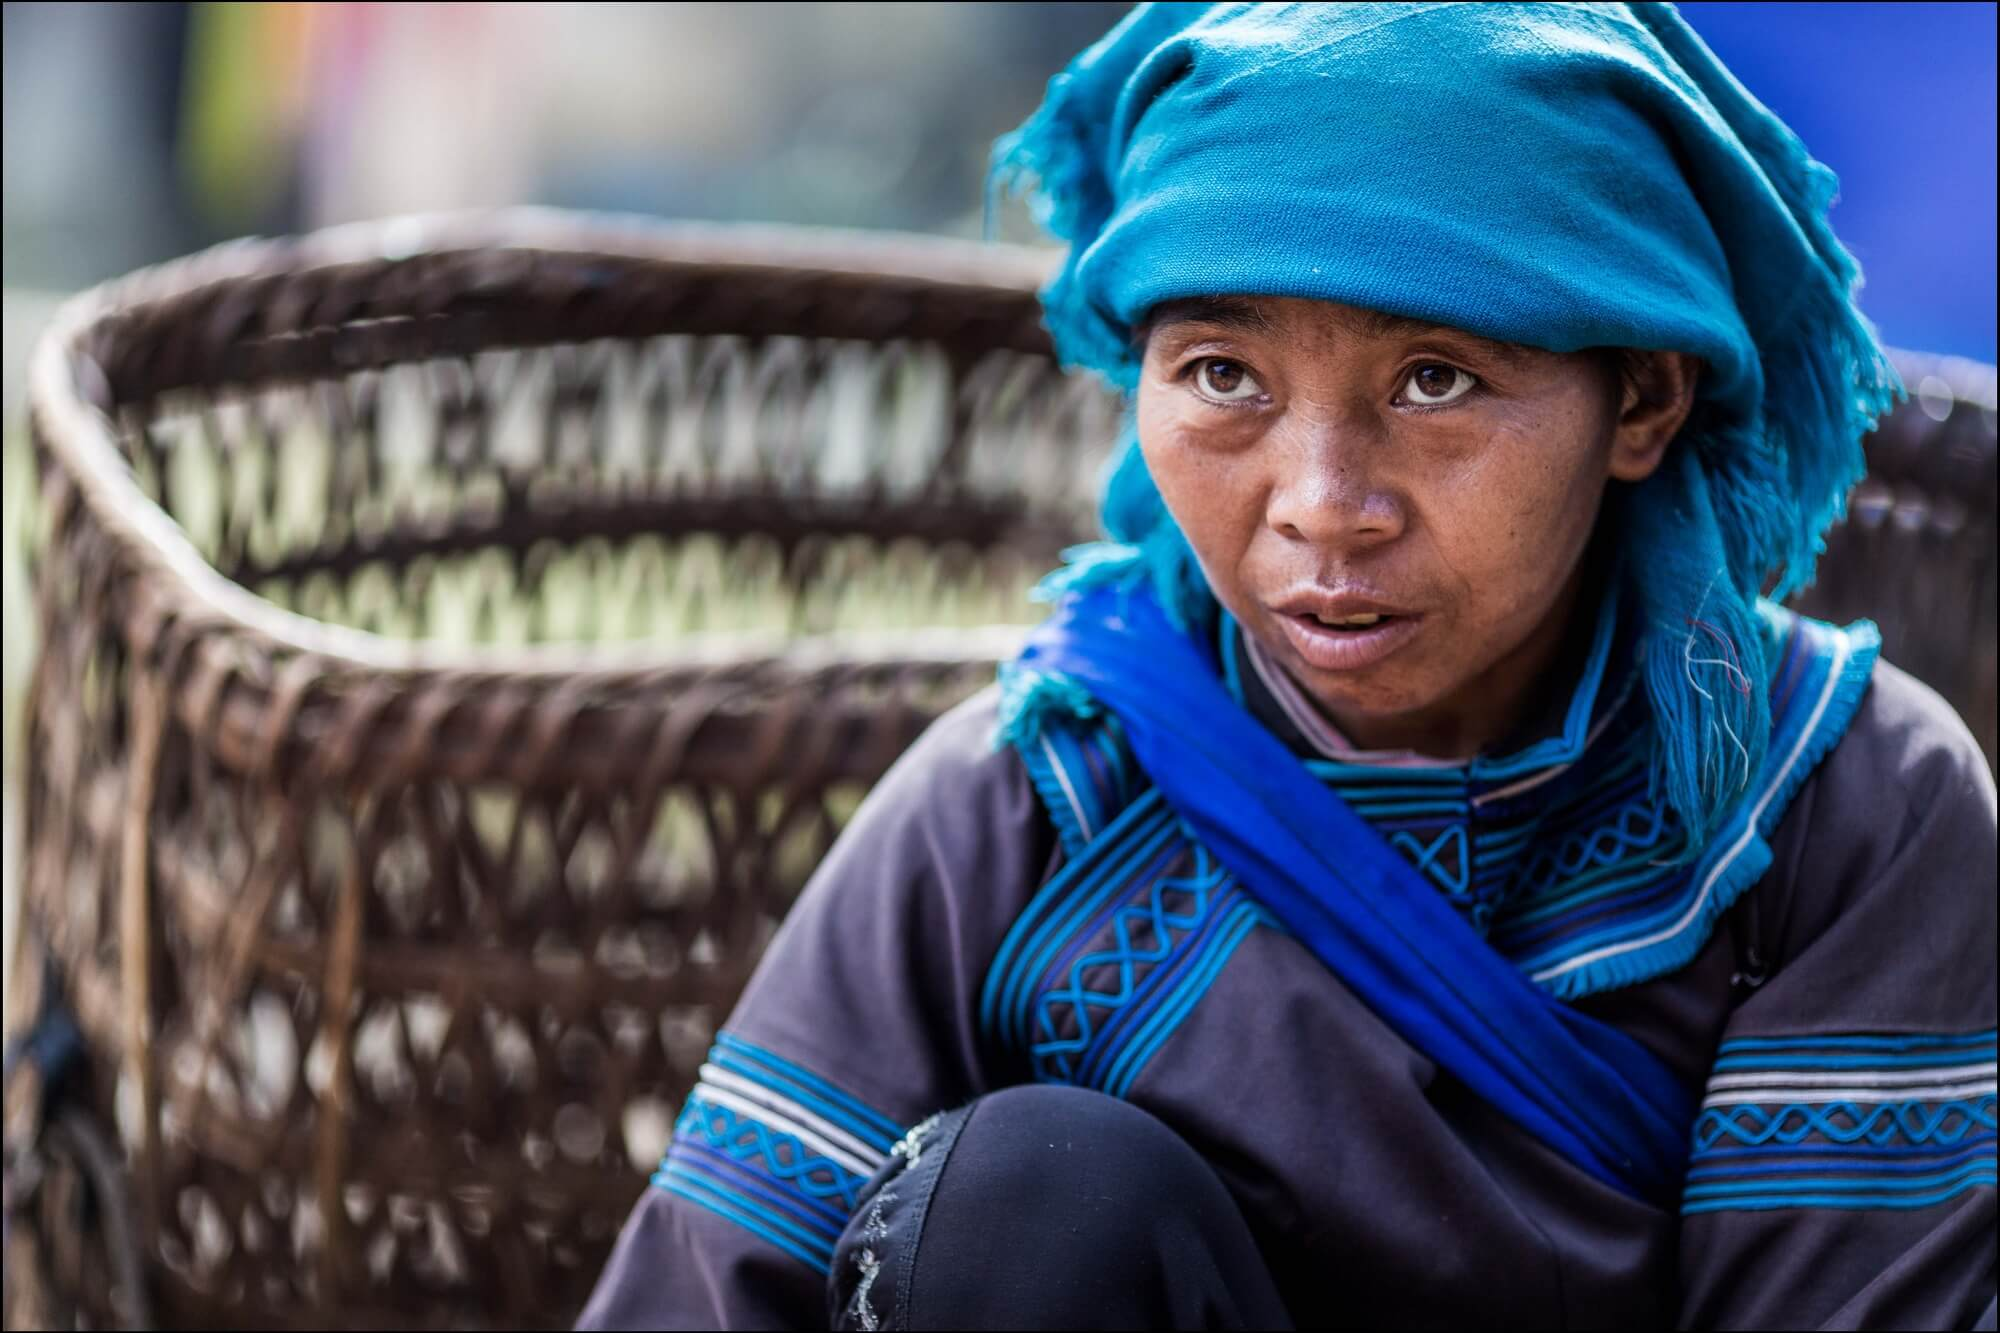 Vietnam Minority Portrait in blue outfit